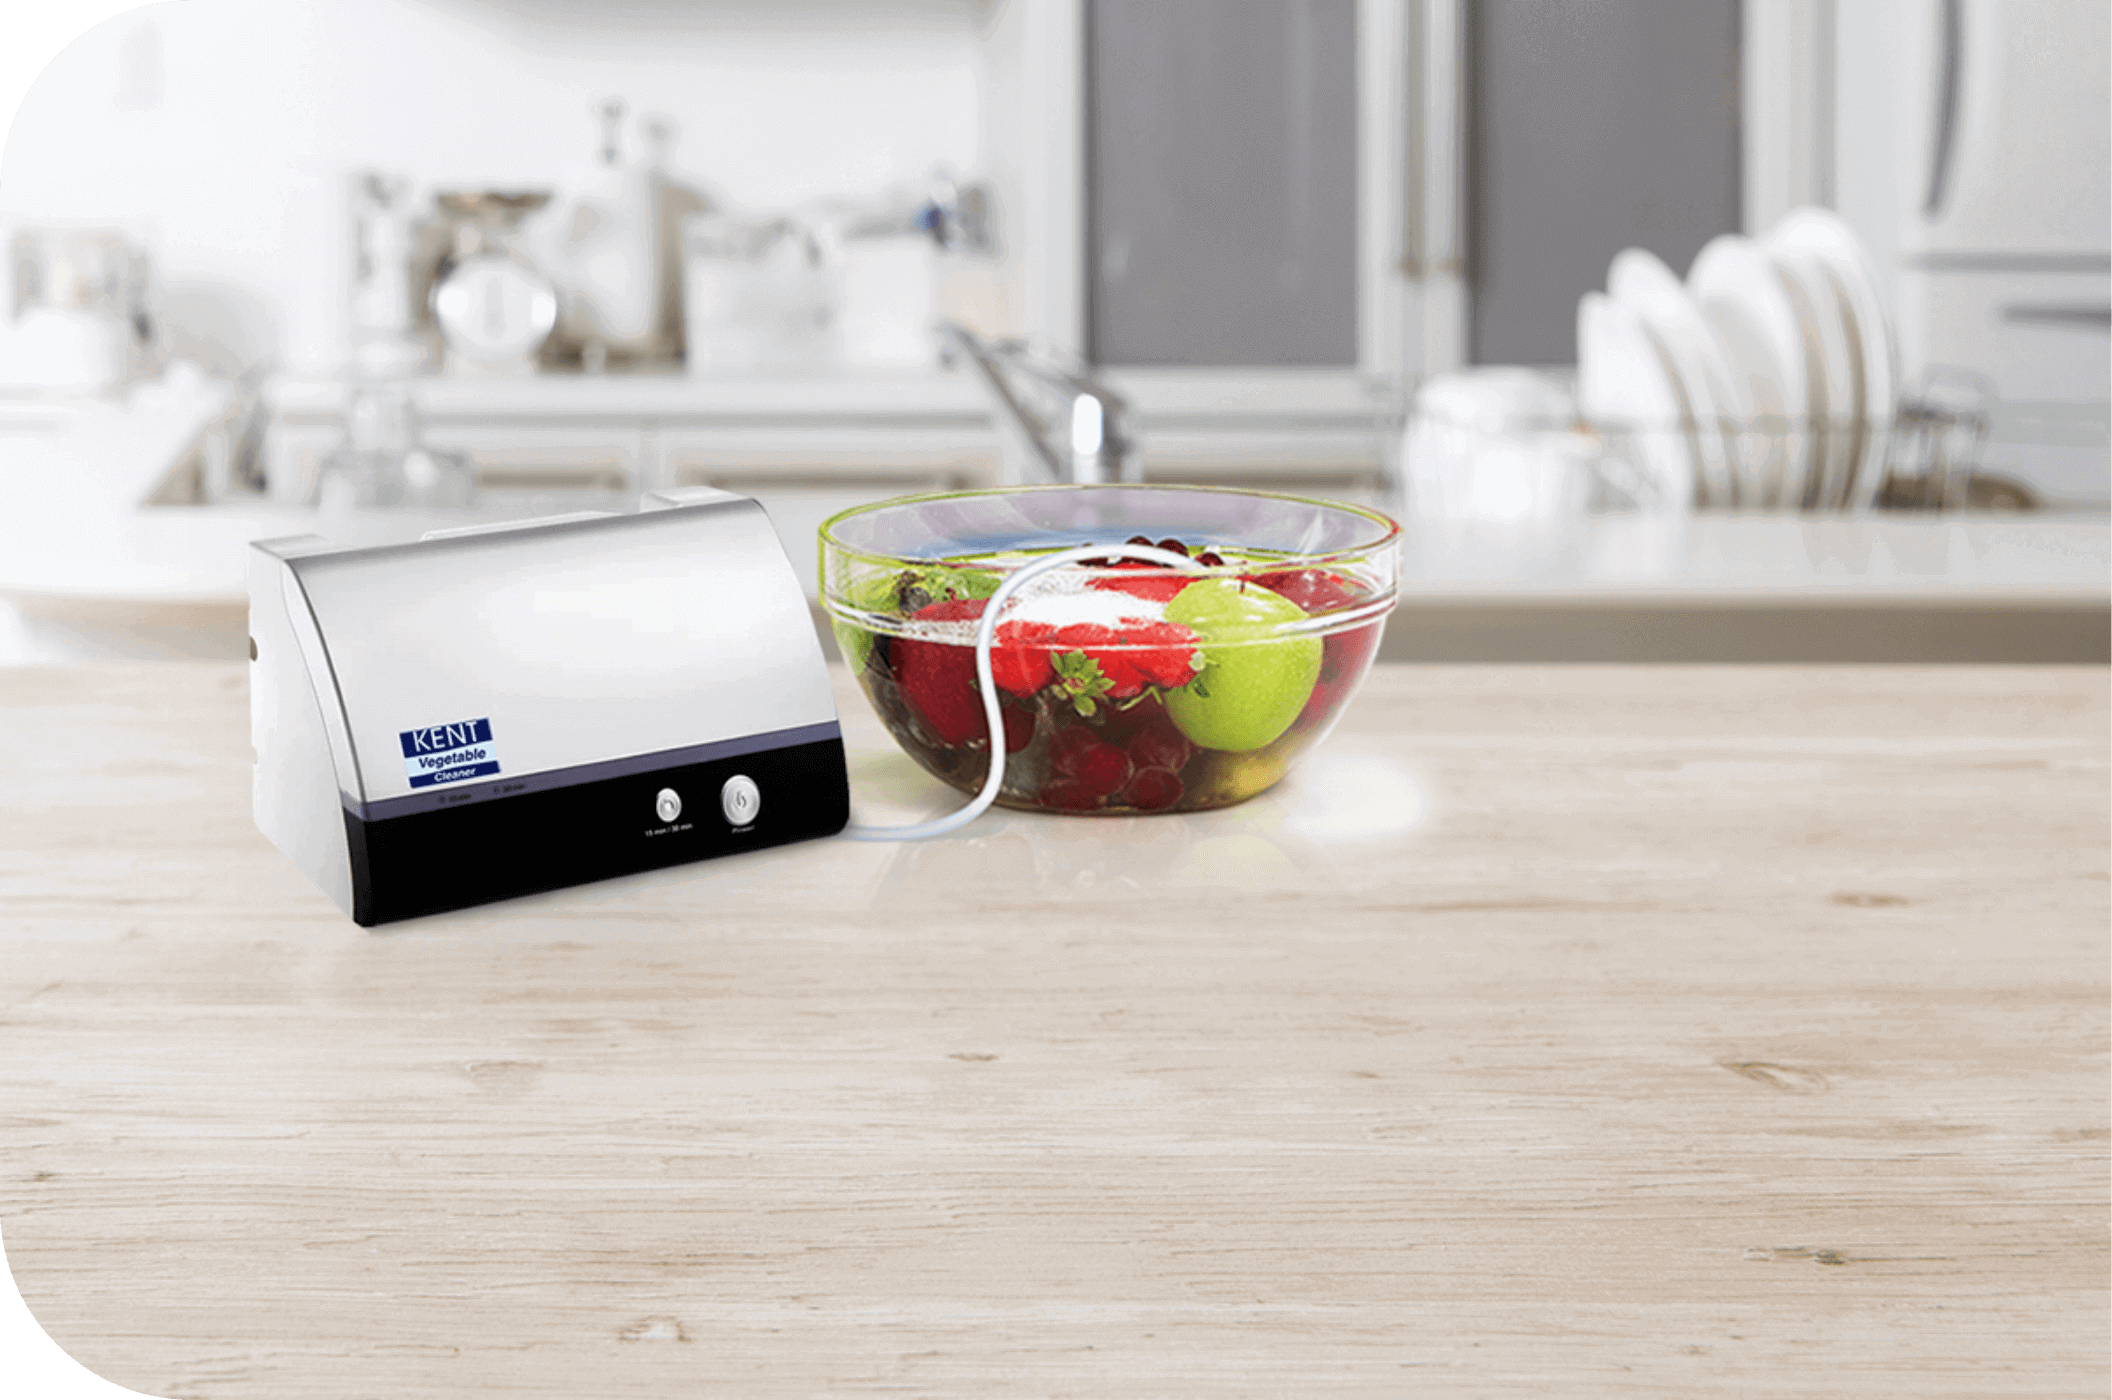 Counter Top Vegetable and Fruit Purifier